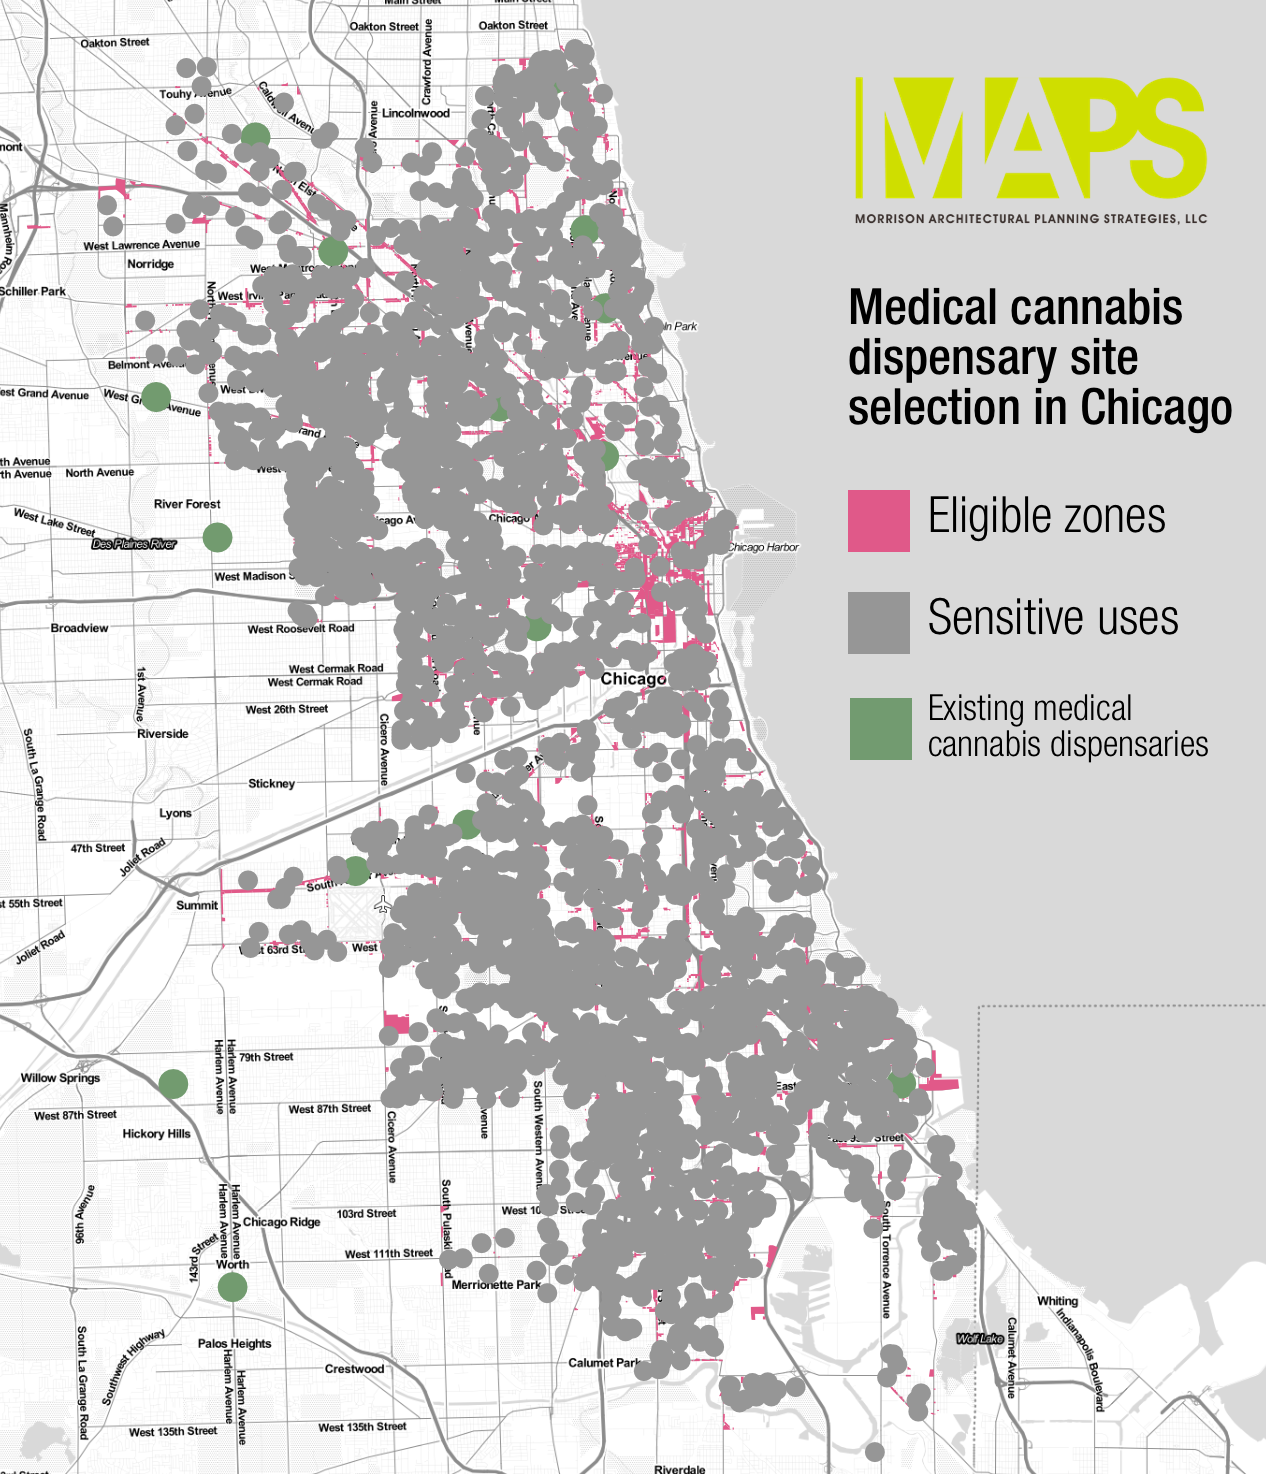 Just look at the map: Areas in pink are the only parts of Chicago where one can potentially open a medical cannabis dispensary. Gray areas show the required 1,000 foot distance a dispensary has to be from sensitive uses. Green areas show the 1,500 foot buffer around existing medical marijuana dispensaries – those medical dispensary owners who apply for a recreational pot dispensary license must be outside of the green areas.